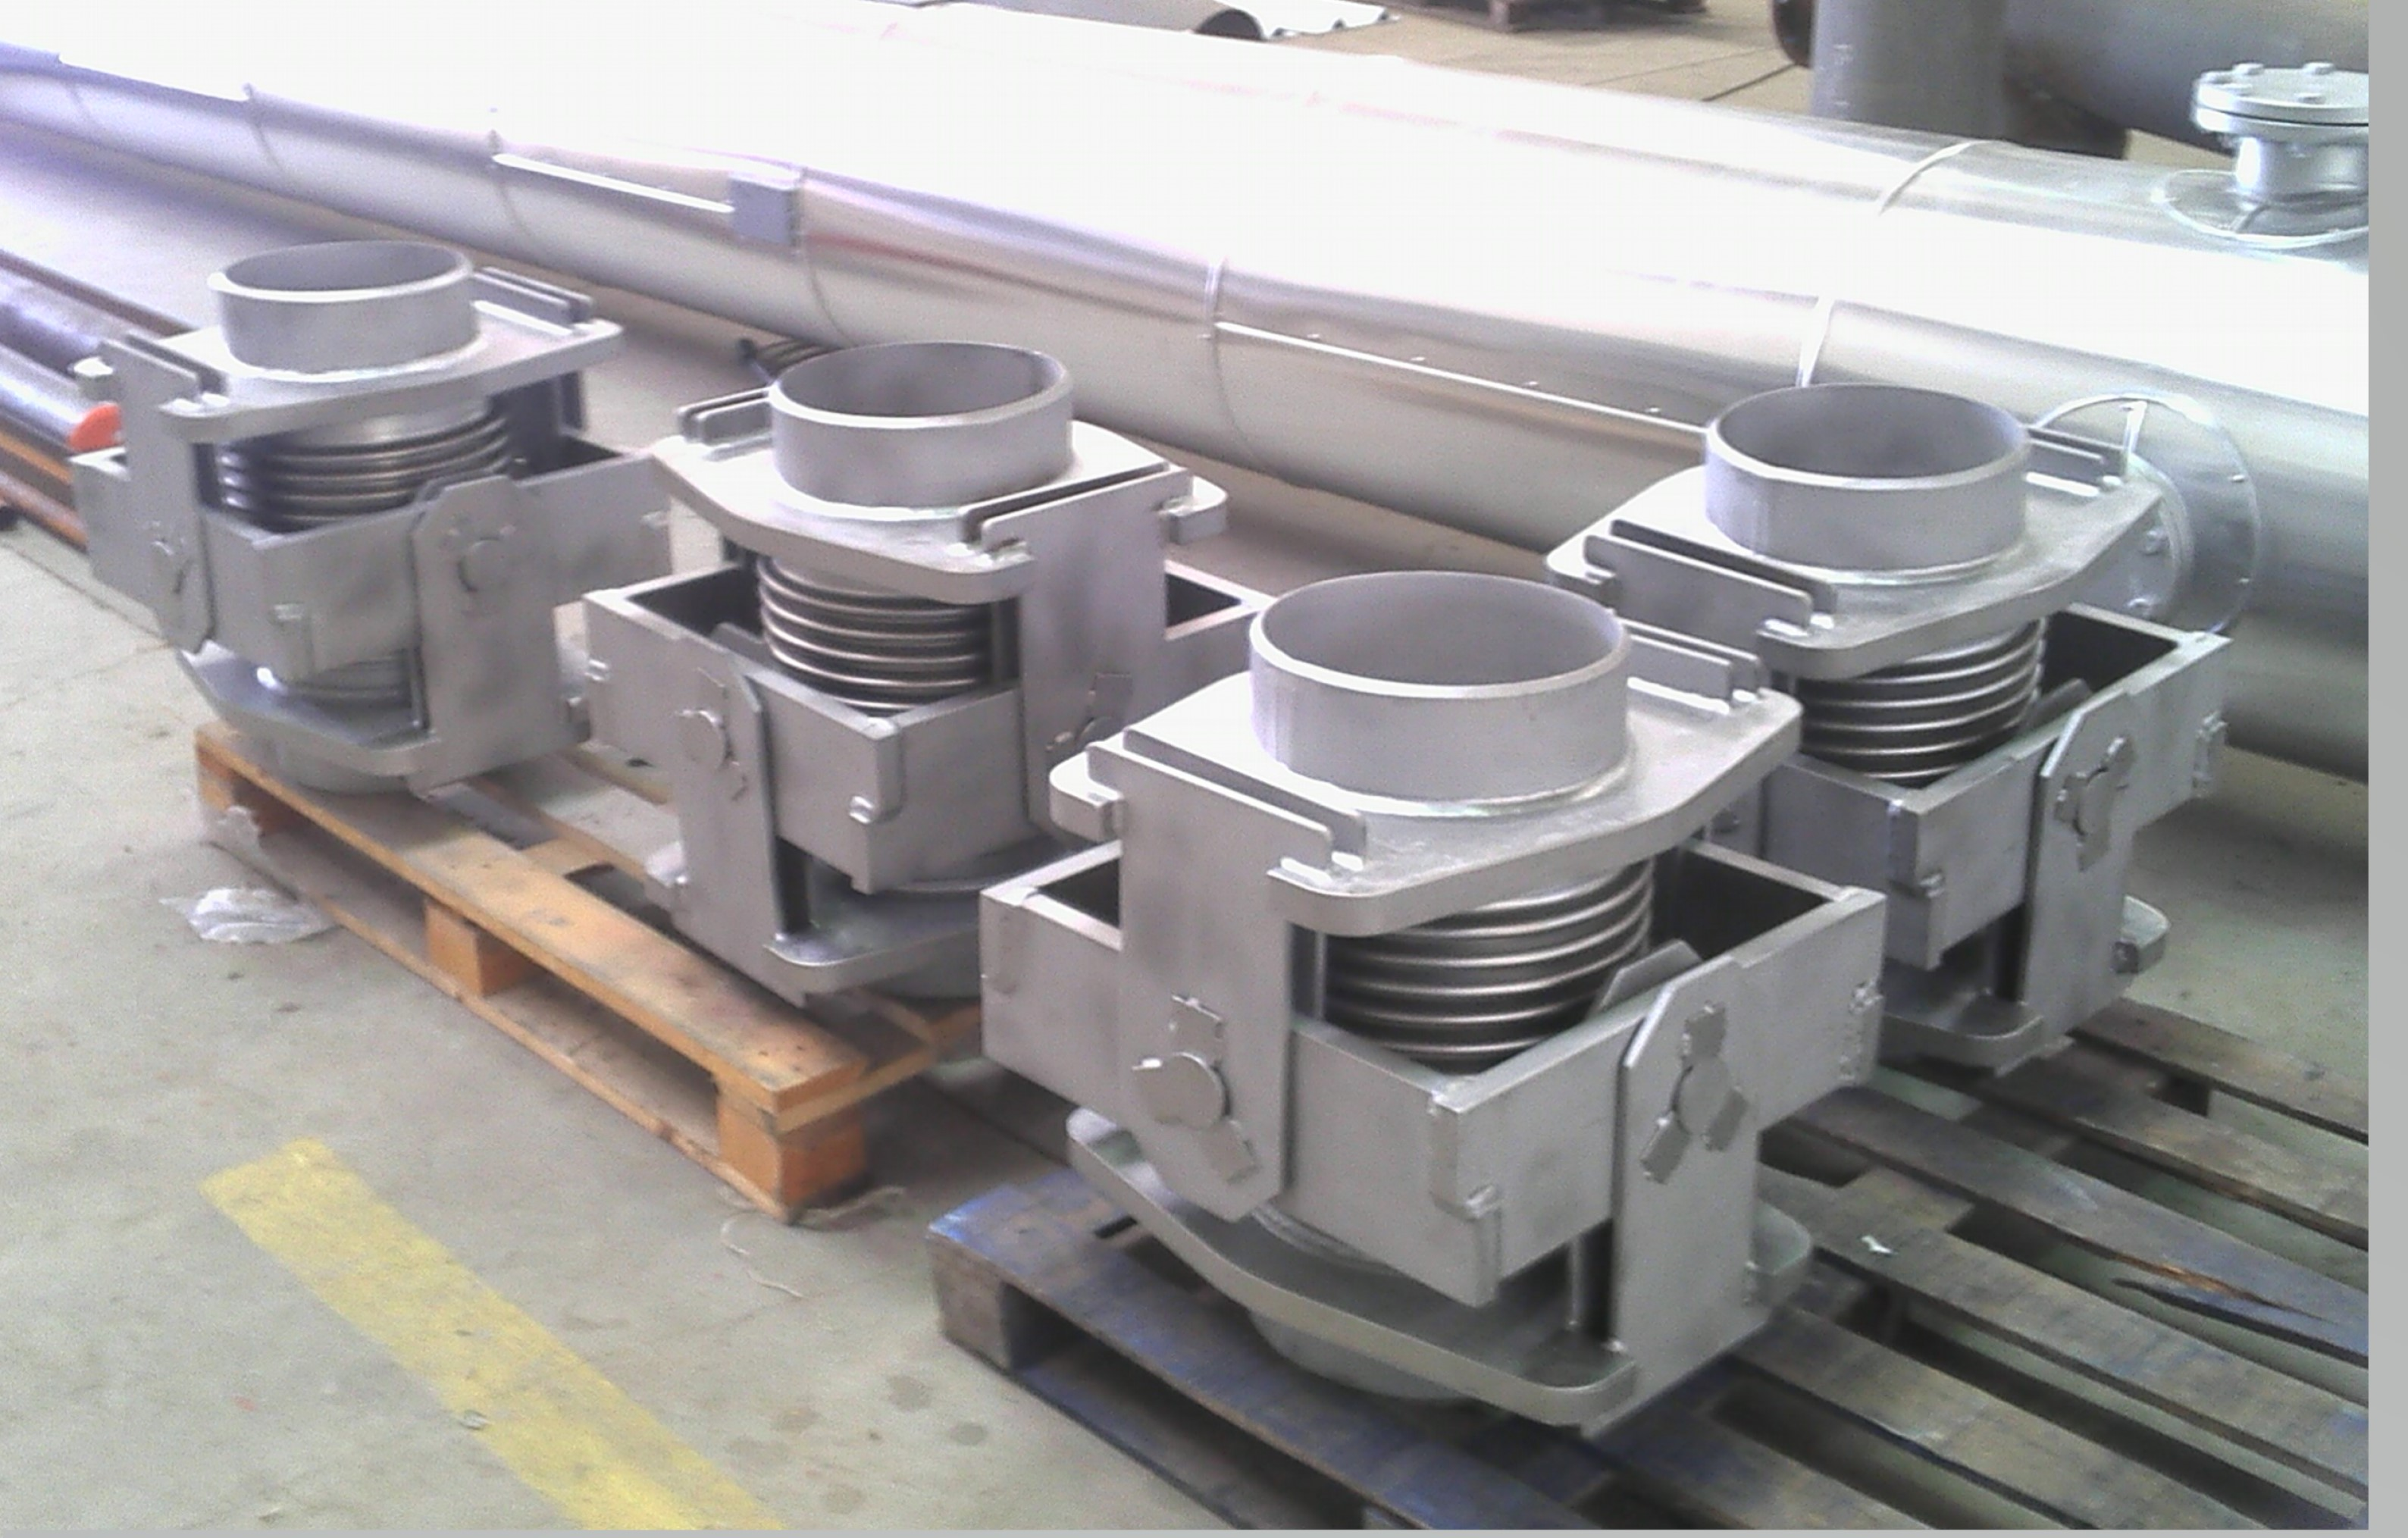 Gimbal expansion joints DN 250 for 14 bar and 400 ºC; at site to be installed